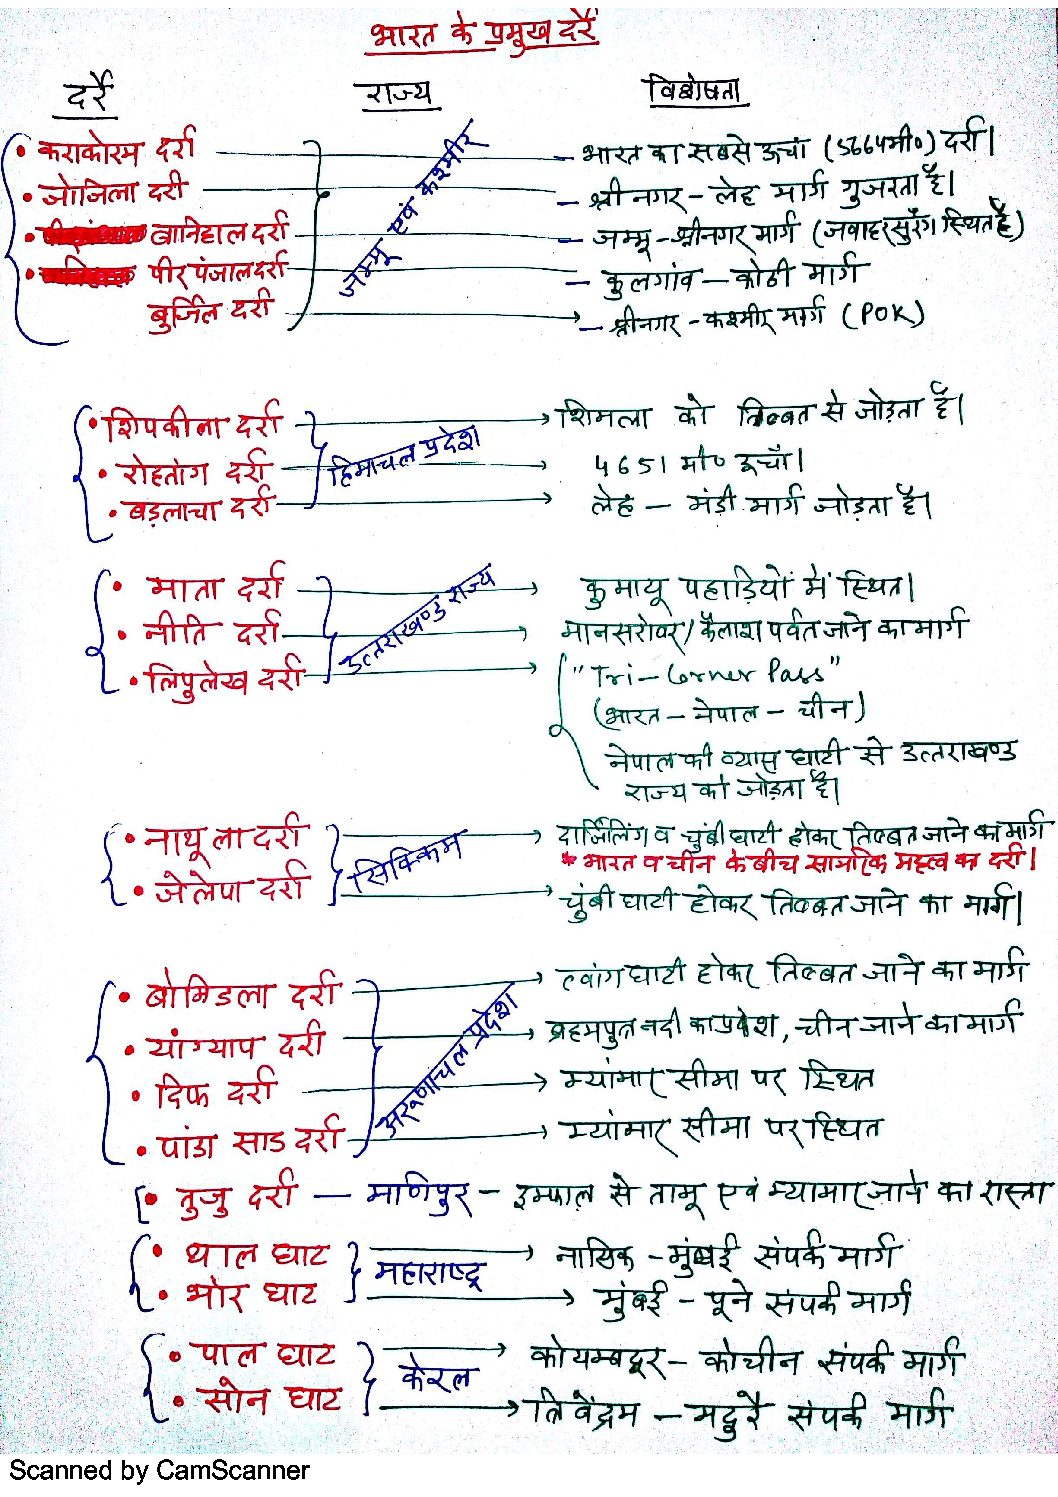 Geography Capsule (Asia, Europe, lakes, etc.): Handwritten Class Notes in Hindi